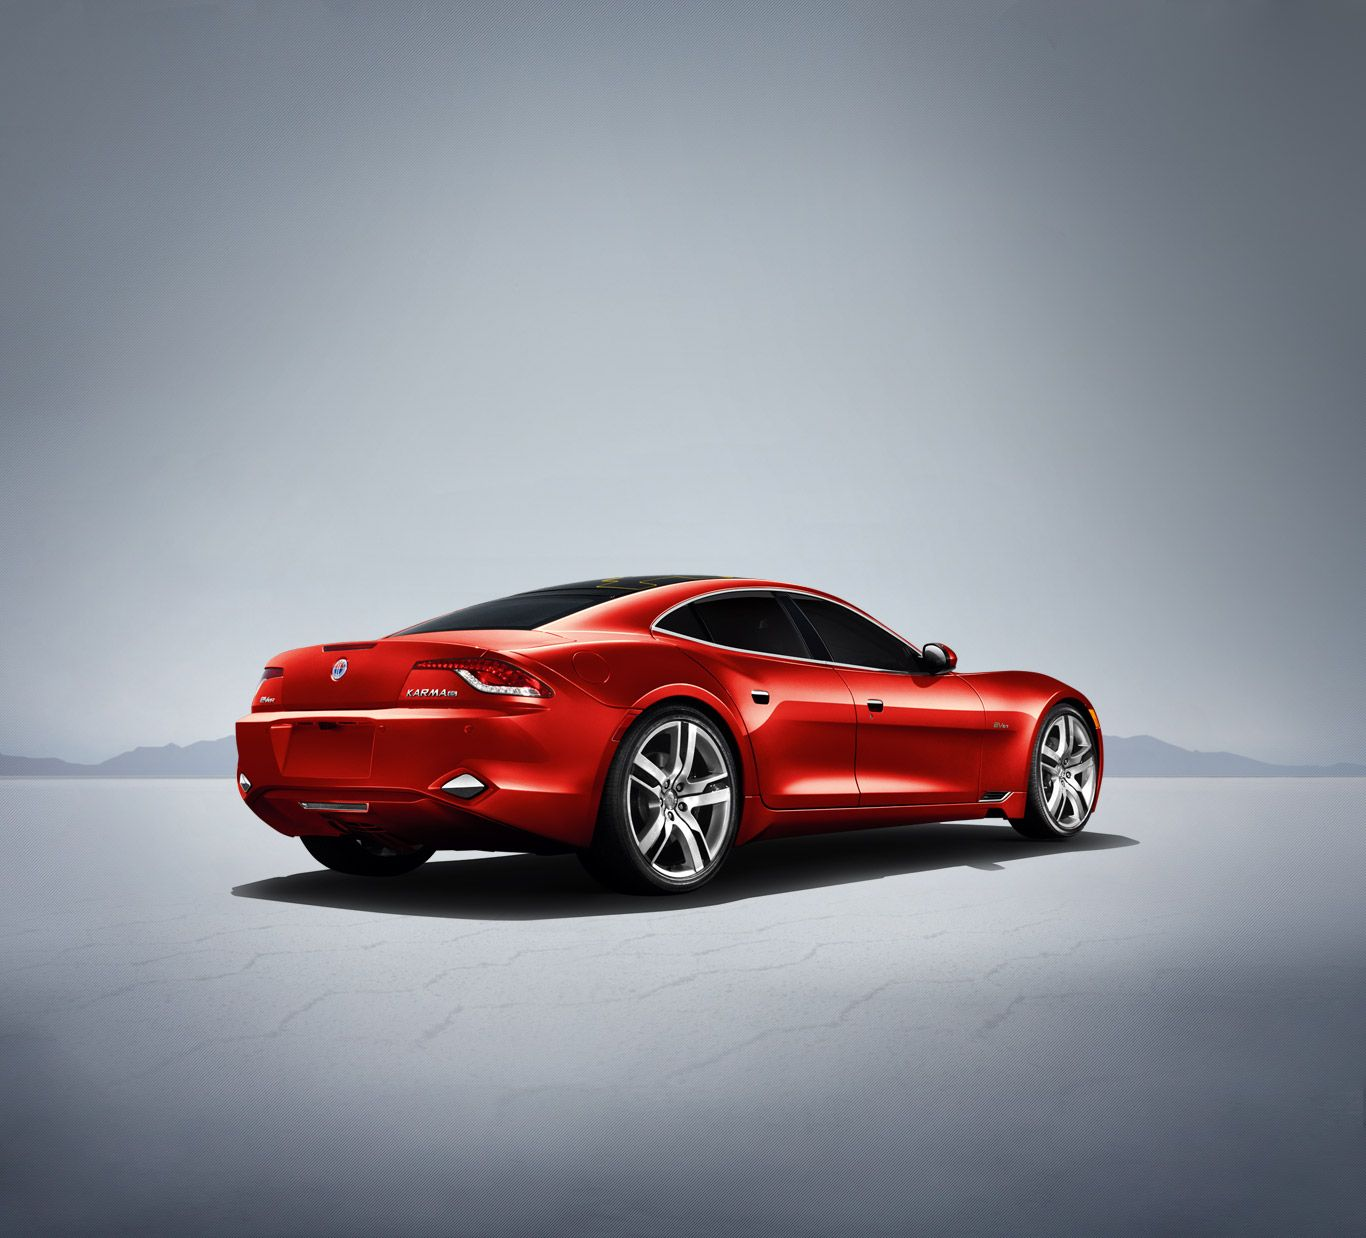 2012 Fisker Karma. Electric Car With Guts.